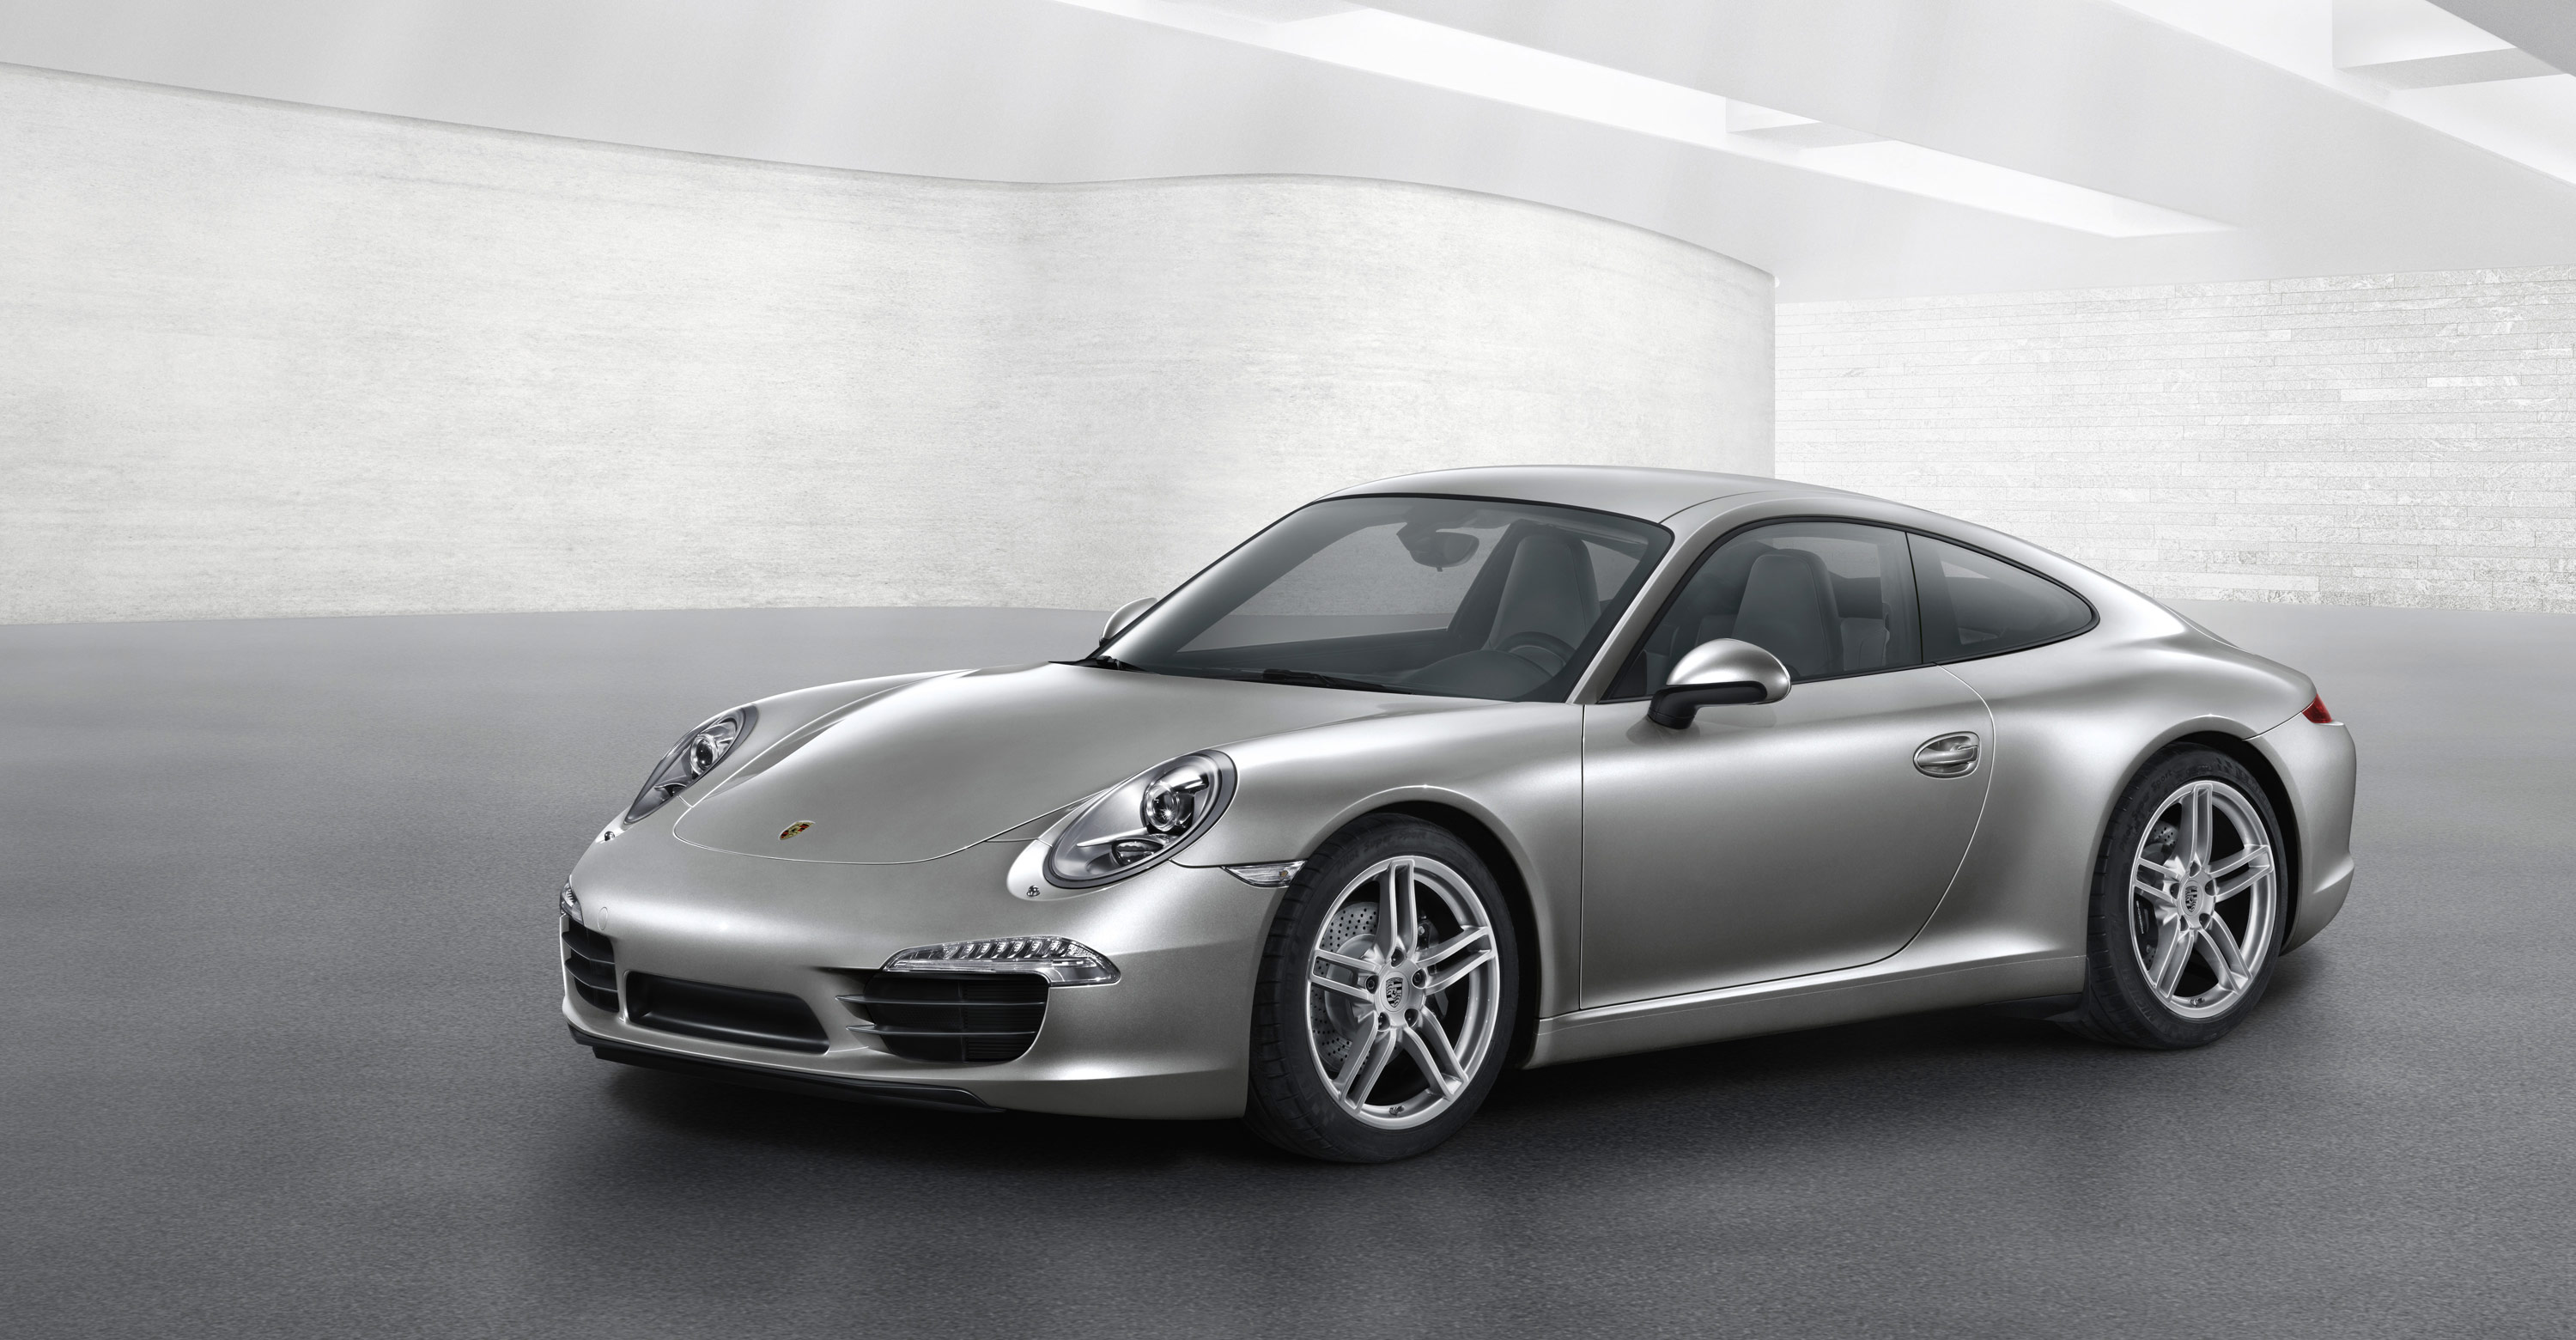 2012 all new style shape porsche 911 991 not 998 model official picture carrera basic simple